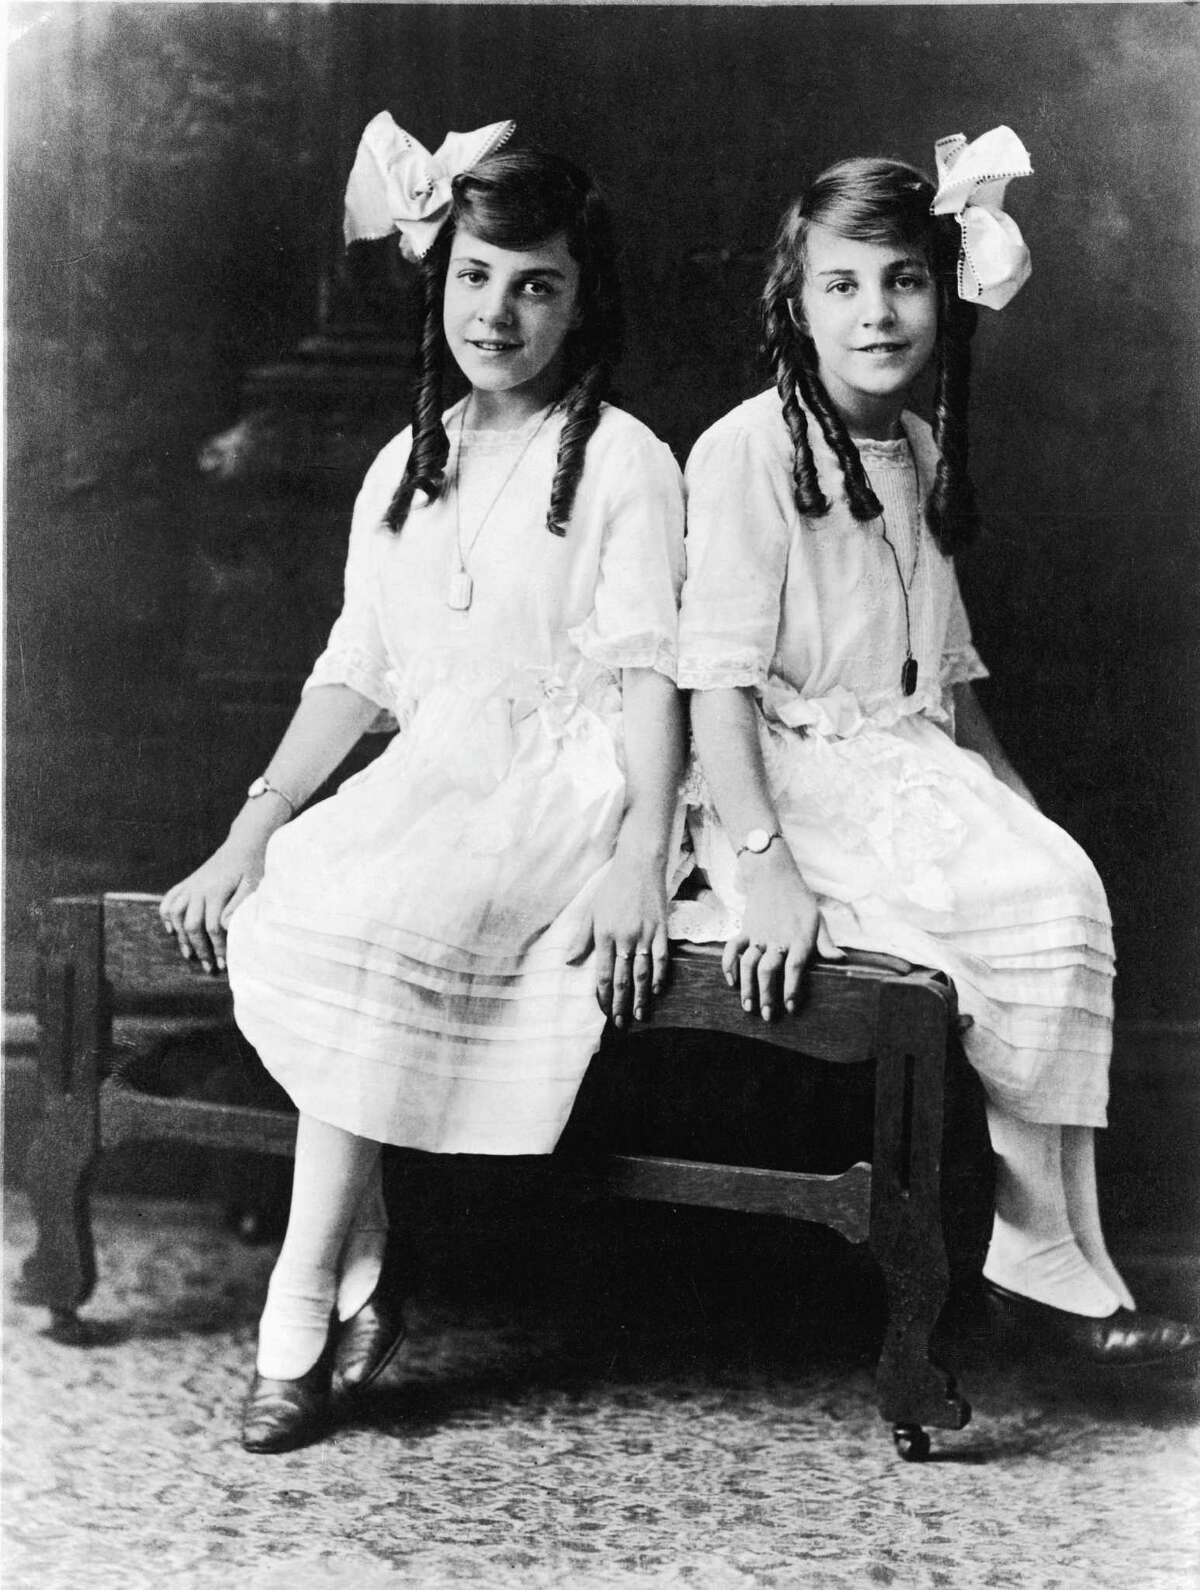 Portrait of British conjoined twins Violet Hilton (left) and Daisy Hilton dressed in matching dress with large bows in their hair, early 1920s.